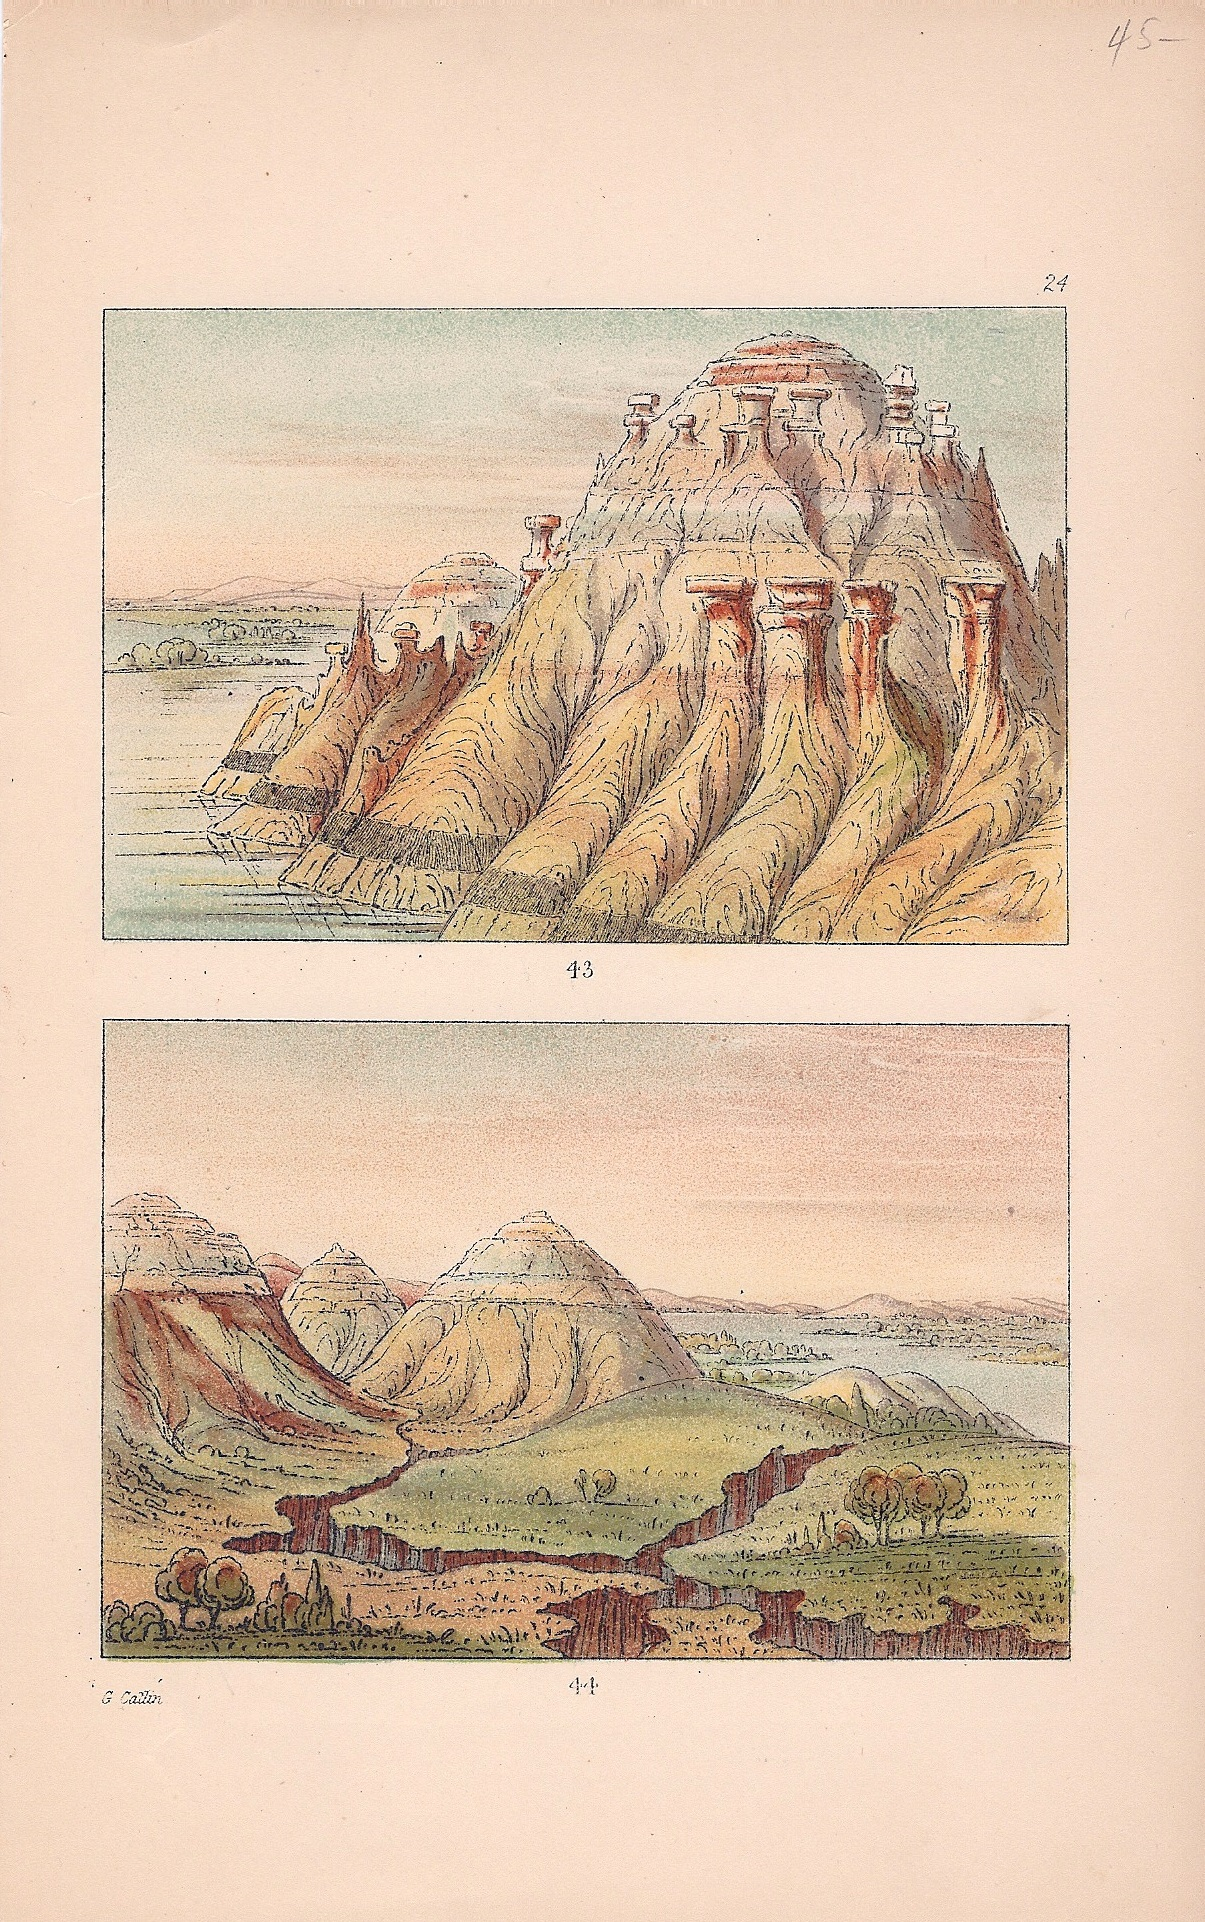 Image 43 and 44